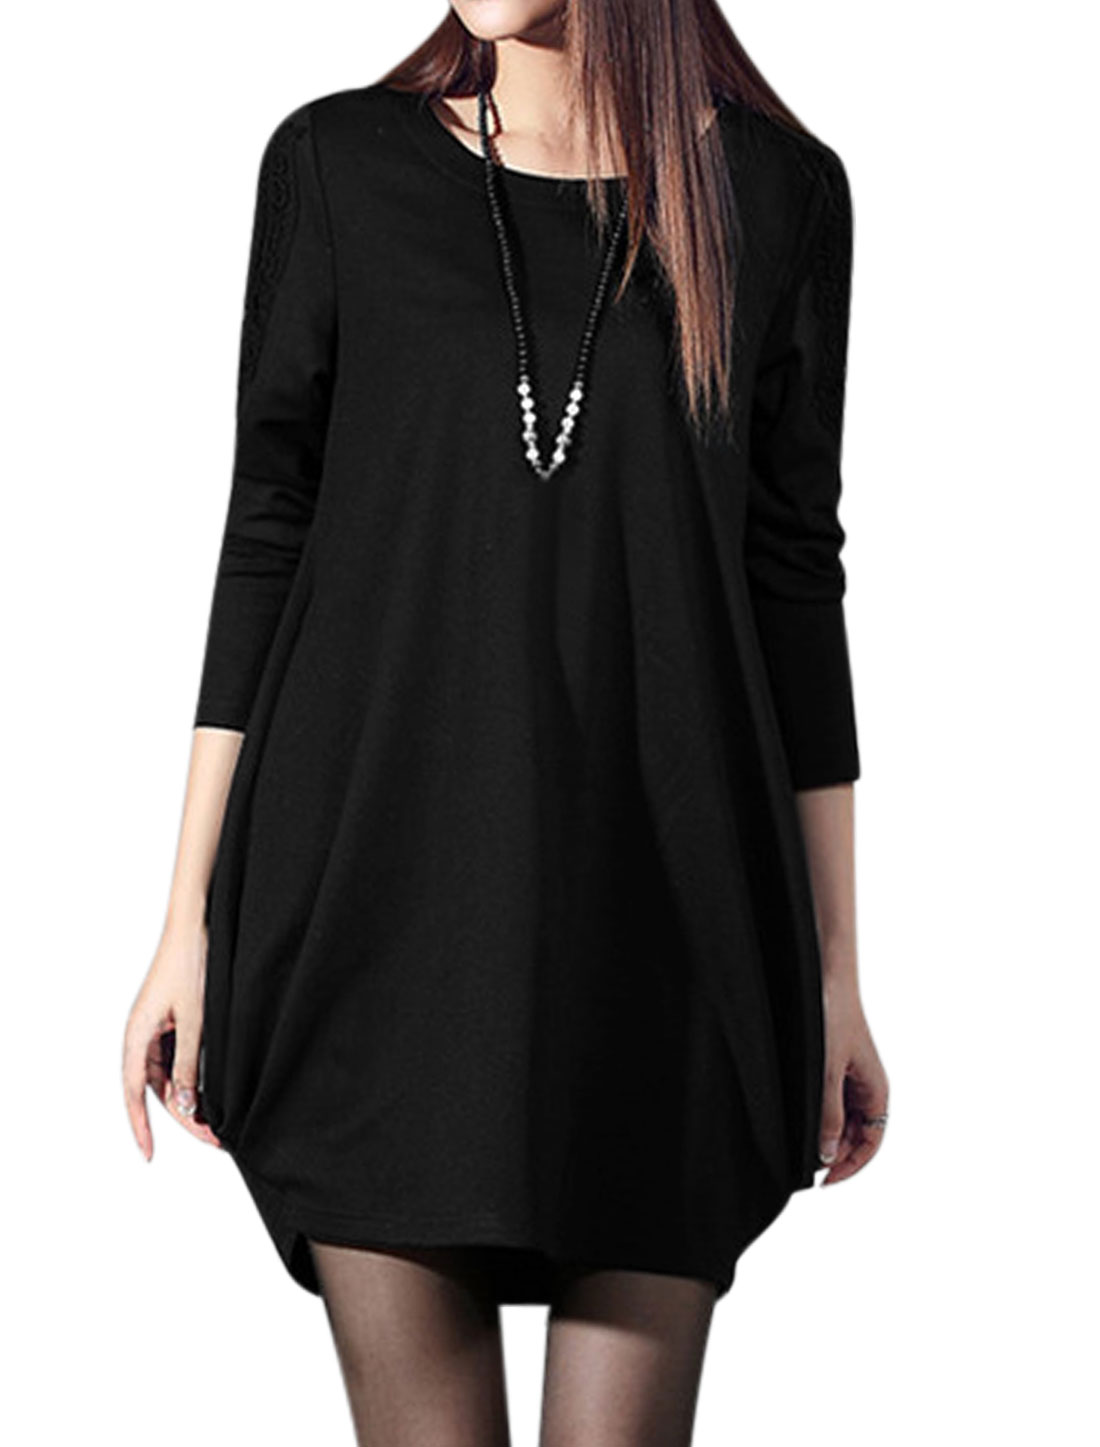 Women Long Sleeves Crochet Panel Ruched Detail Casual Tunic Dress Black XS